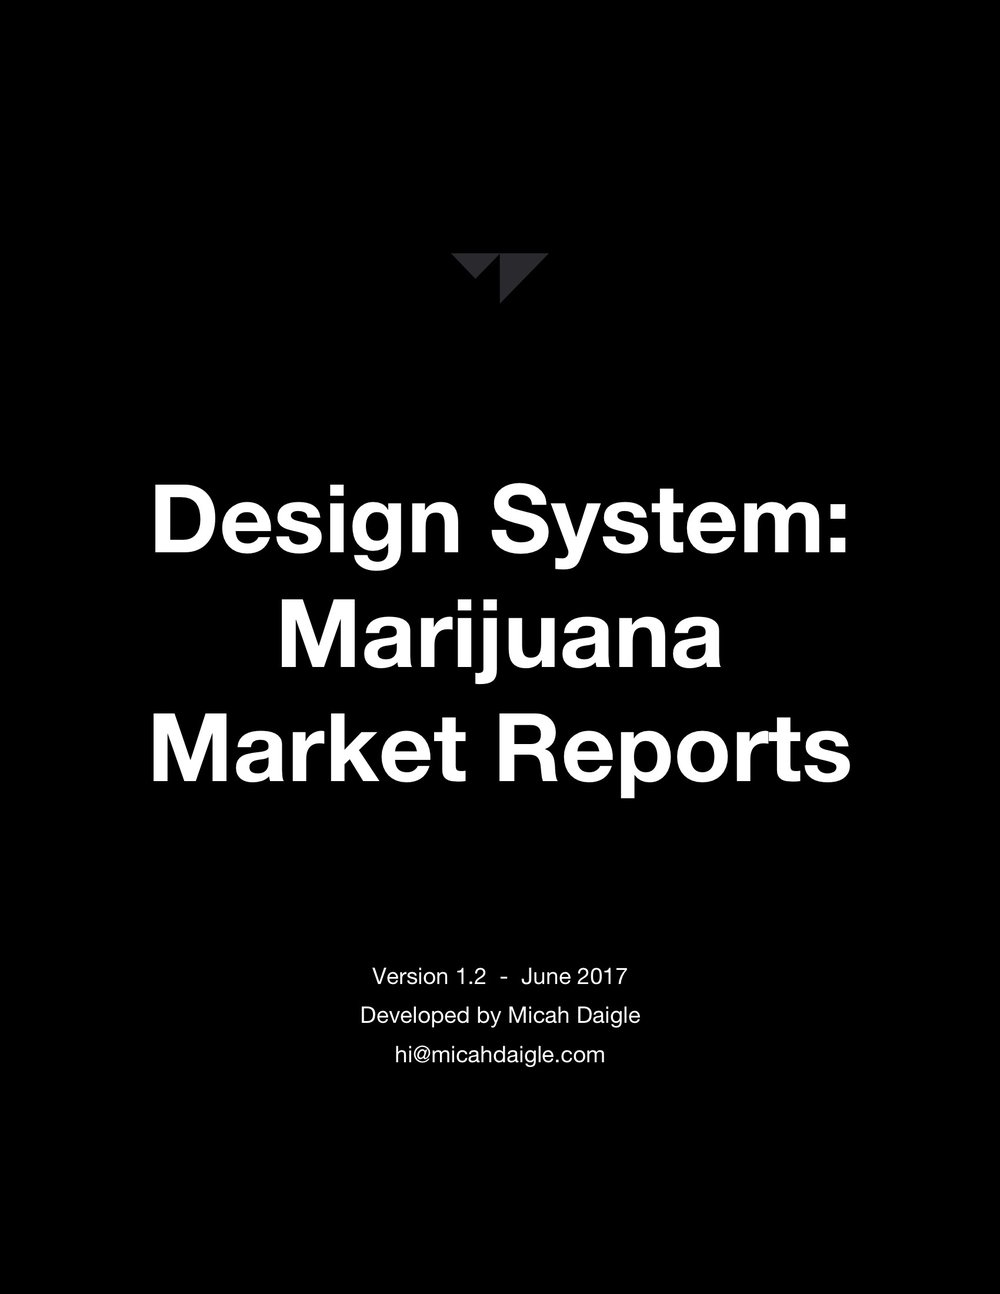 Marijuana Market Reports Design System v1.2.jpeg